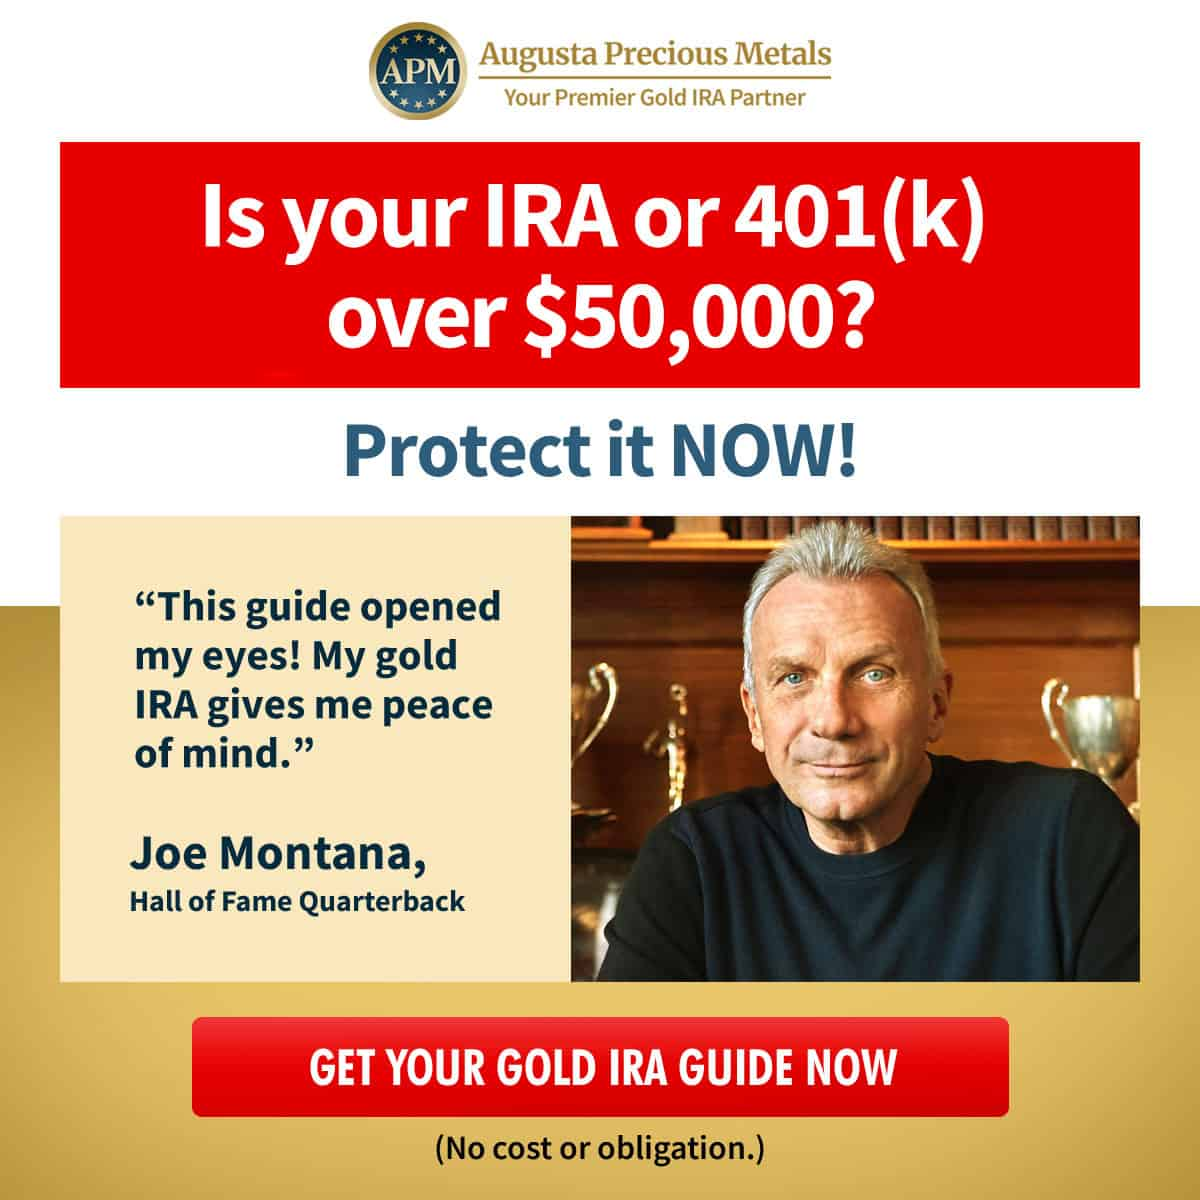 augusta joe montana gold IRA guide $50k offer A v1